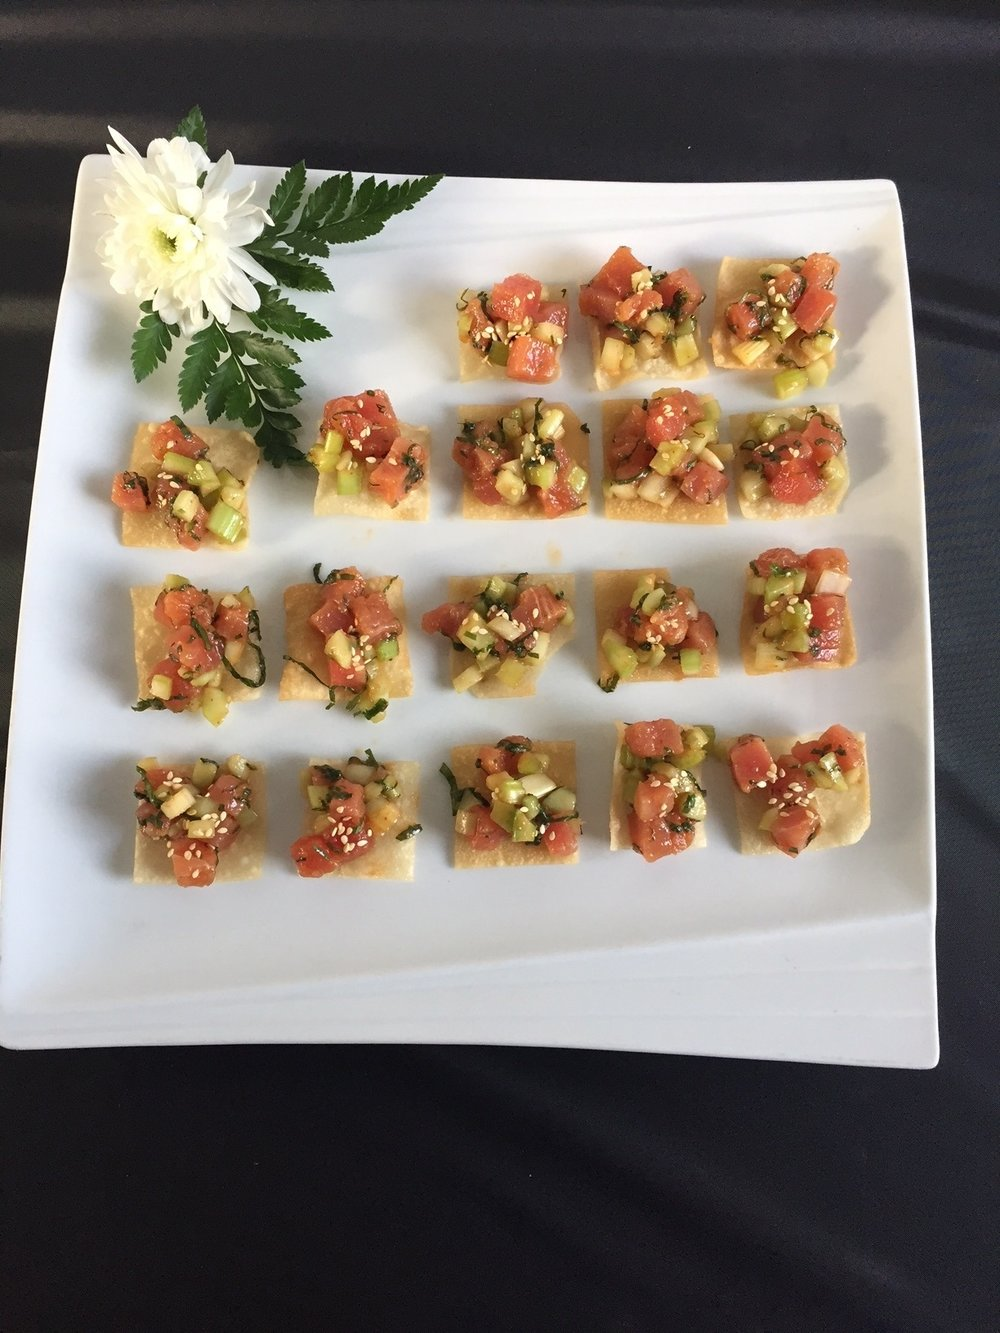 Ahi Poke Tuna on a Wonton Crisp